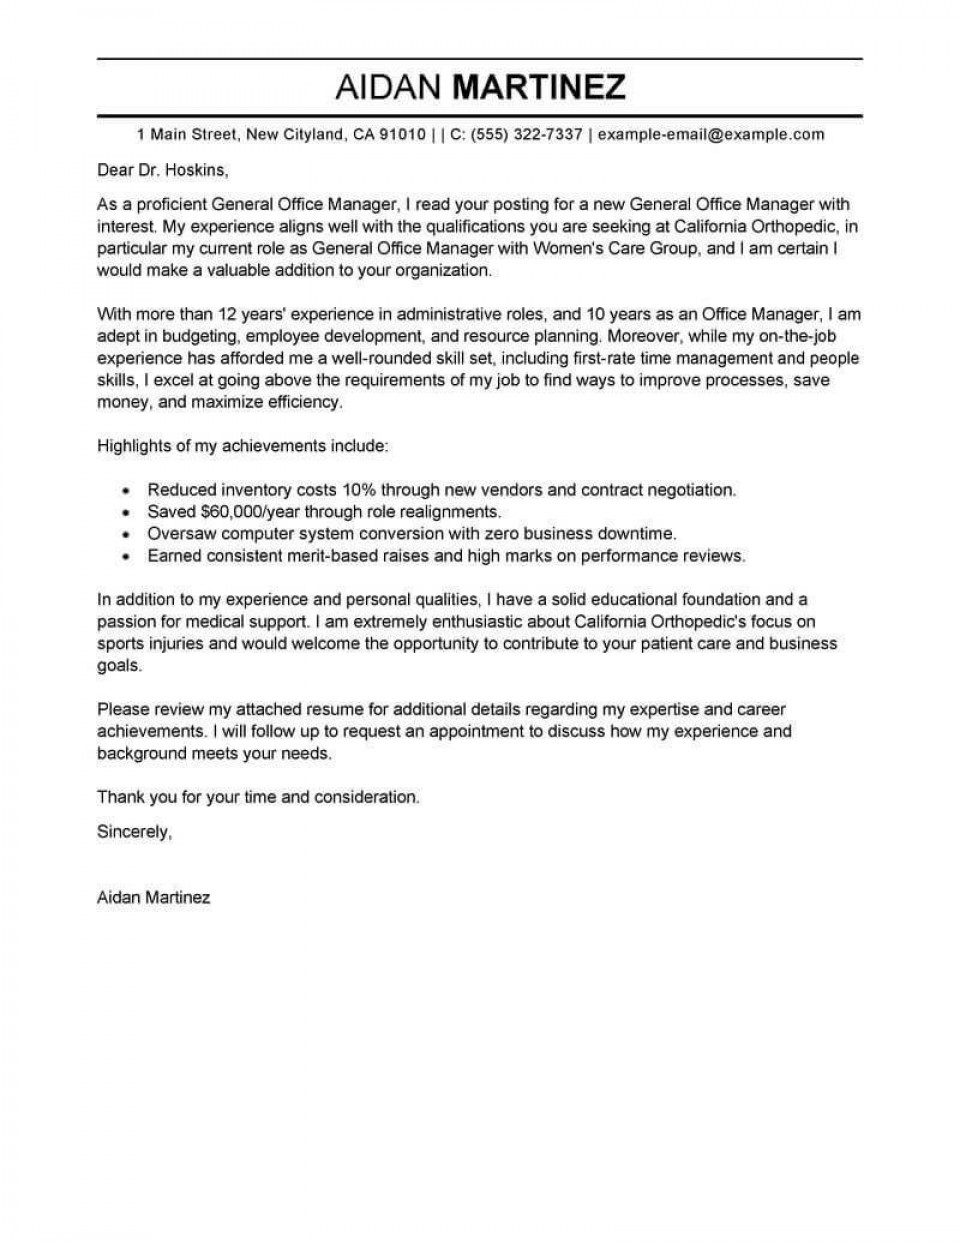 001 Excellent General Manager Cover Letter Template Sample  Hotel960